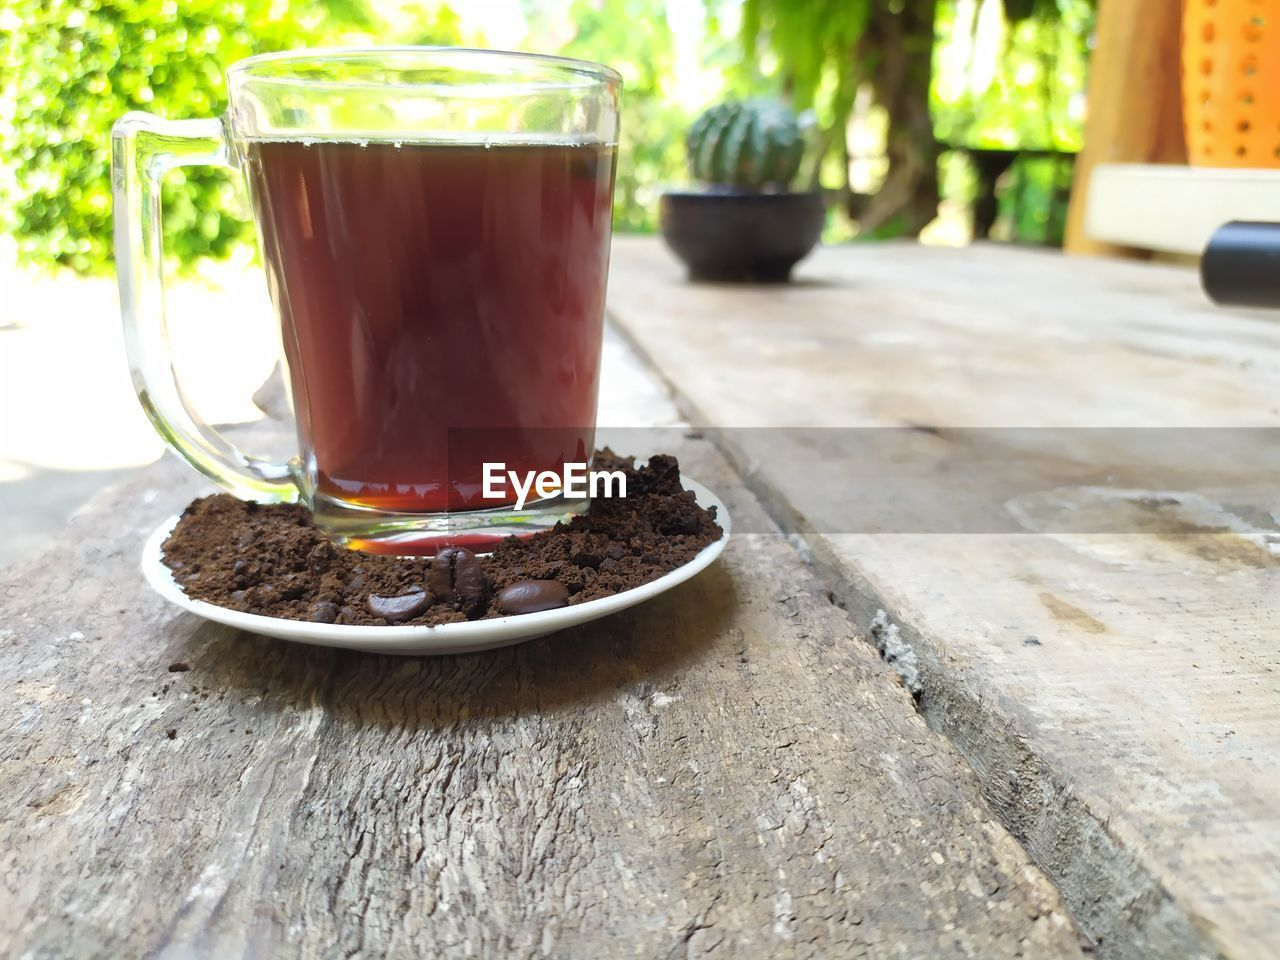 food and drink, table, drink, refreshment, no people, close-up, food, still life, coffee, coffee - drink, freshness, cup, tea, mug, focus on foreground, hot drink, wood - material, leaf, growth, indoors, glass, surface level, crockery